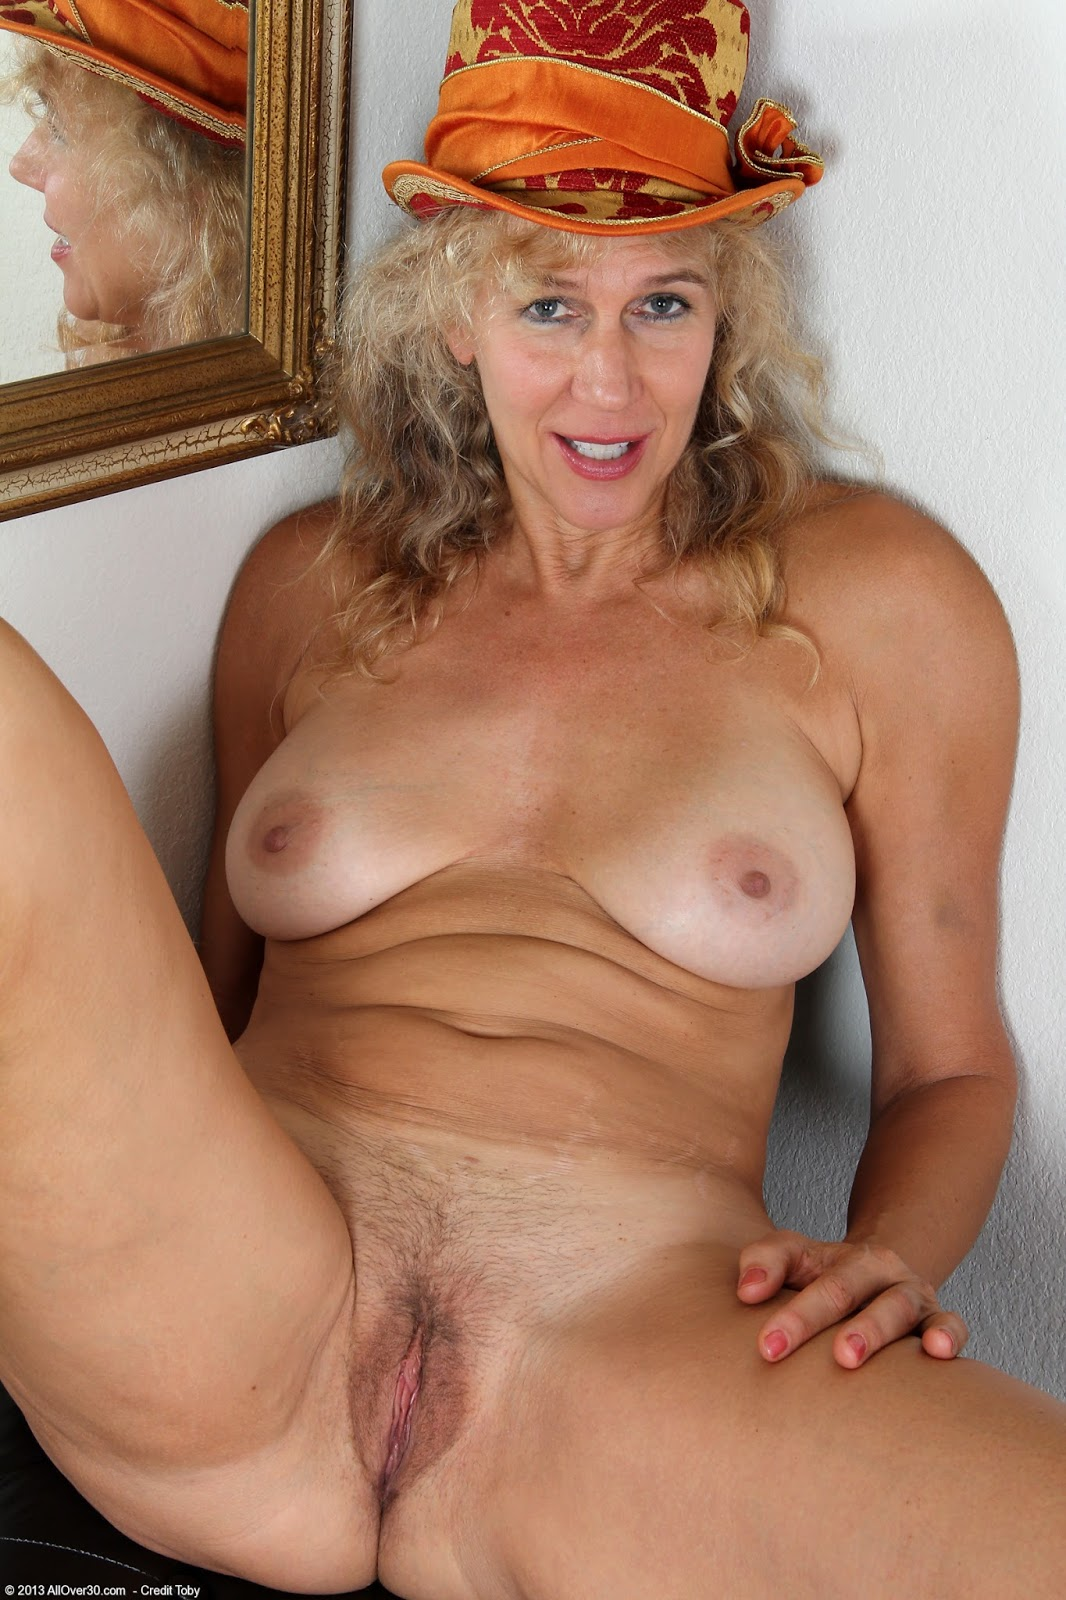 Beautiful 50 year old nude women